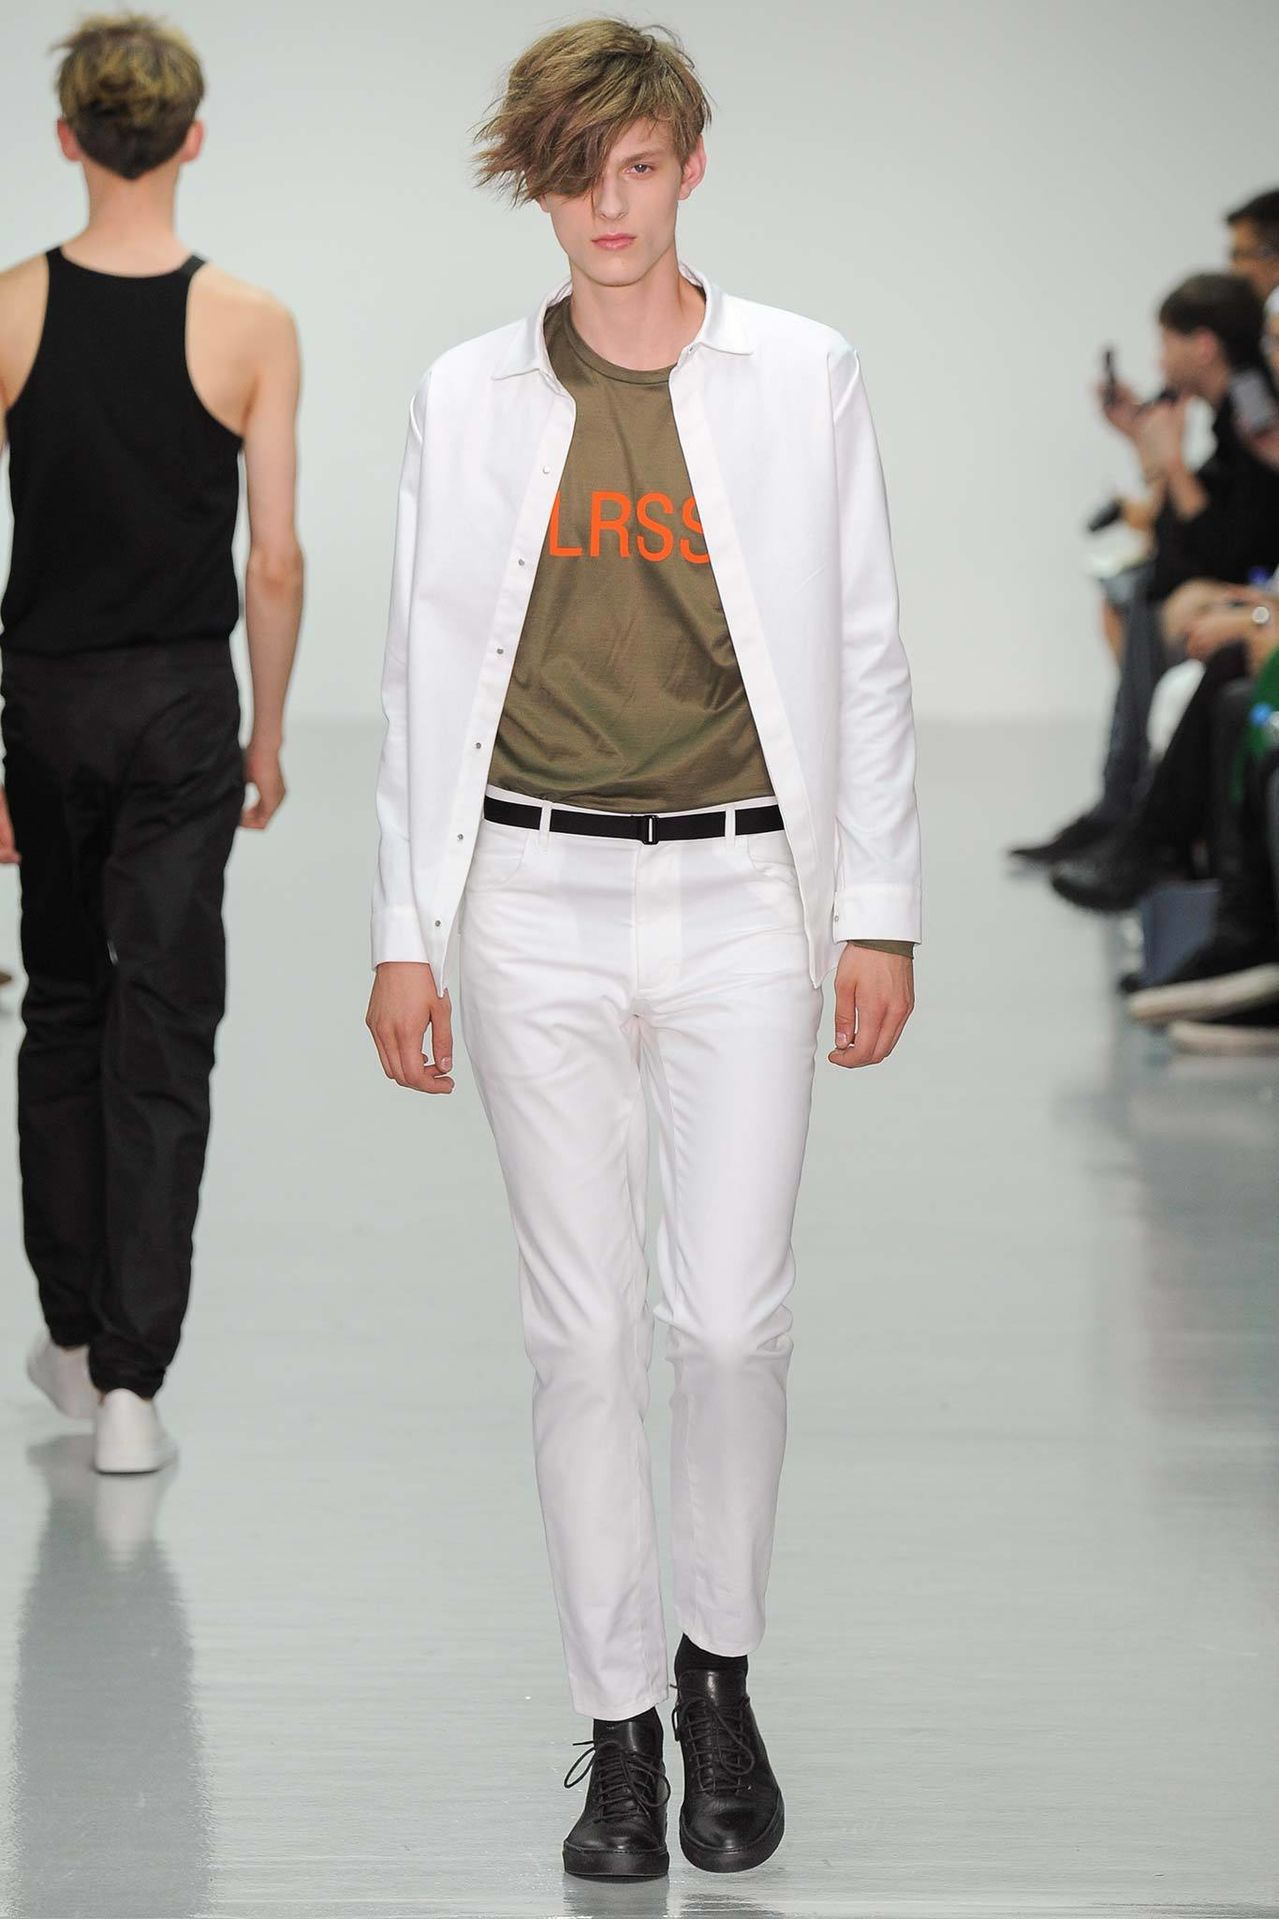 Lee-Roach-Spring-Summer-2015-London-Collections-Men-022